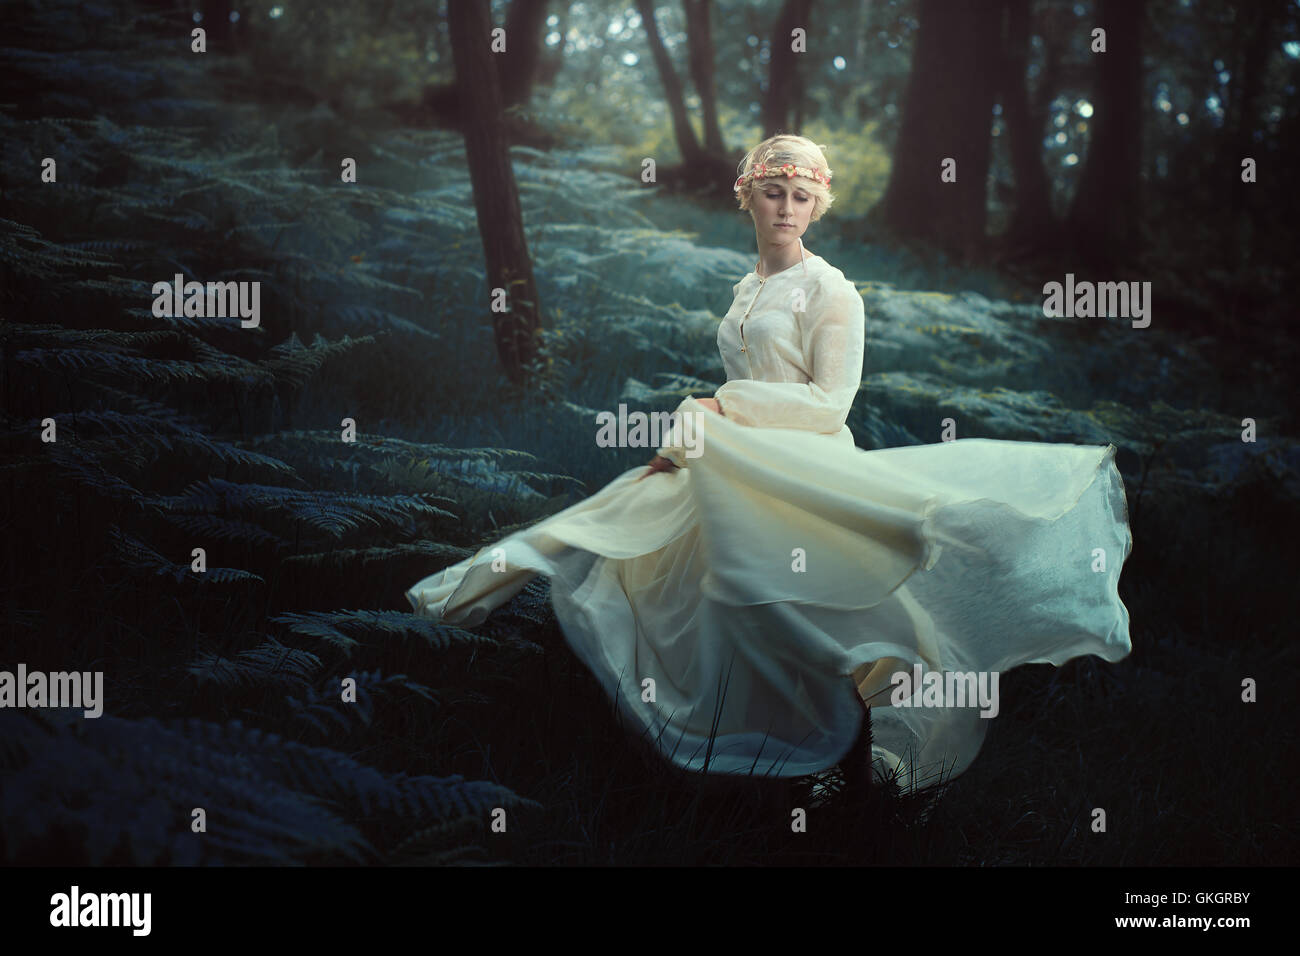 Ethereal woman dancing in dreamy forest. Fantasy and surreal - Stock Image